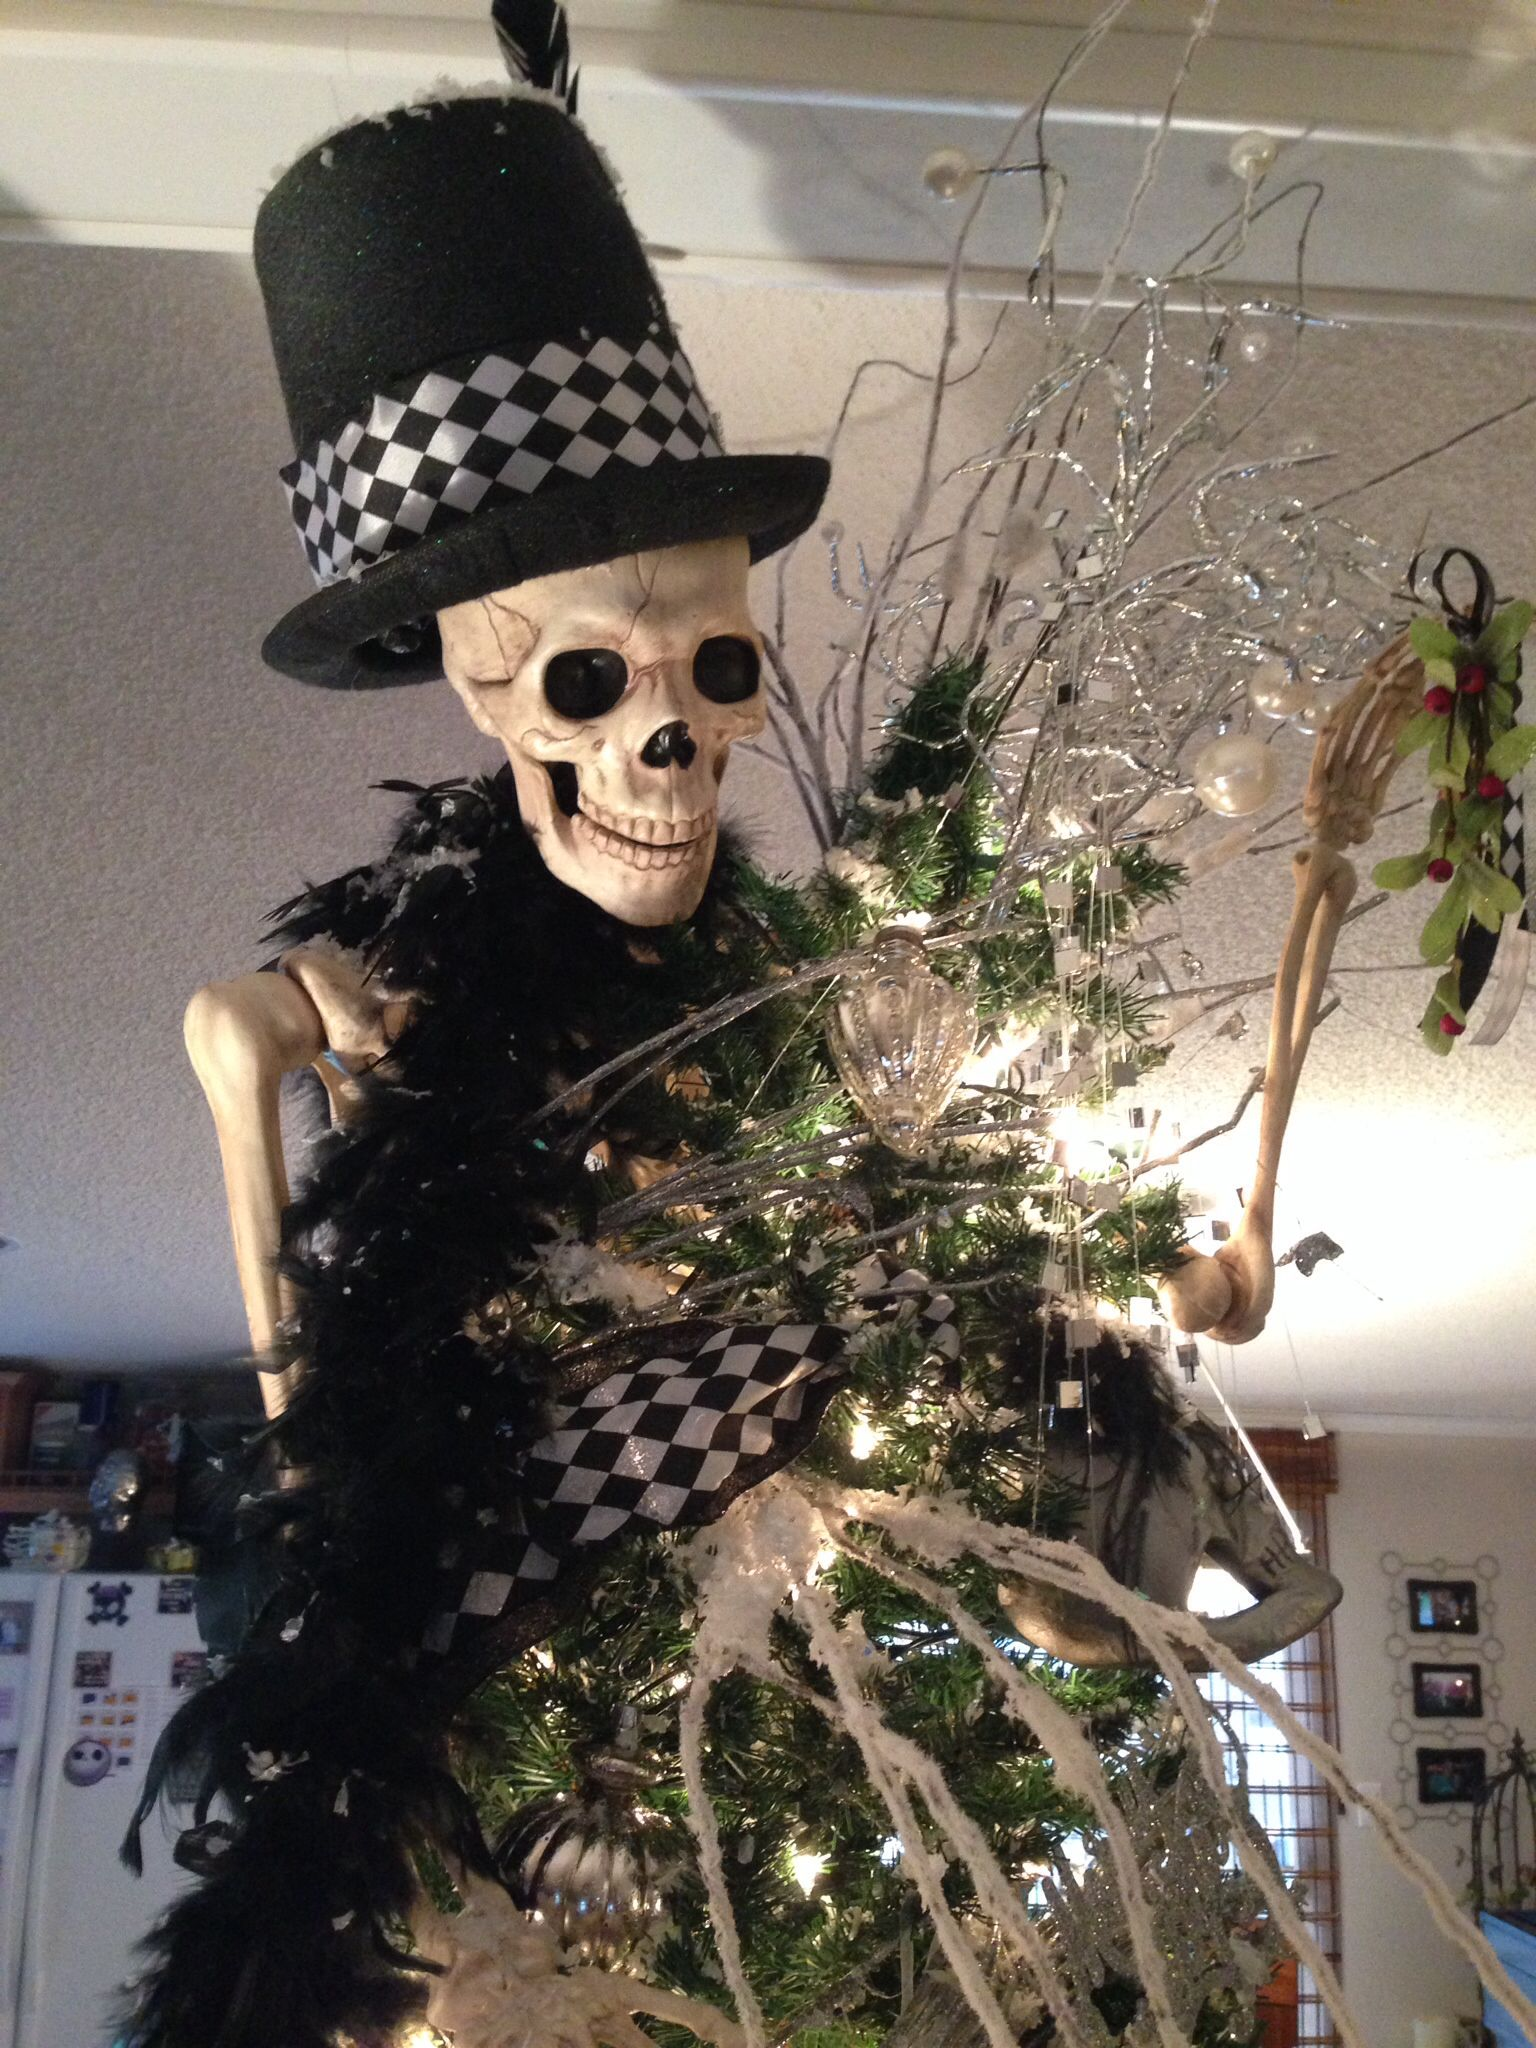 Christmas Skeleton.63dae4a4be1b10c8e9494aa14abbf06a Holiday Trees In 2019